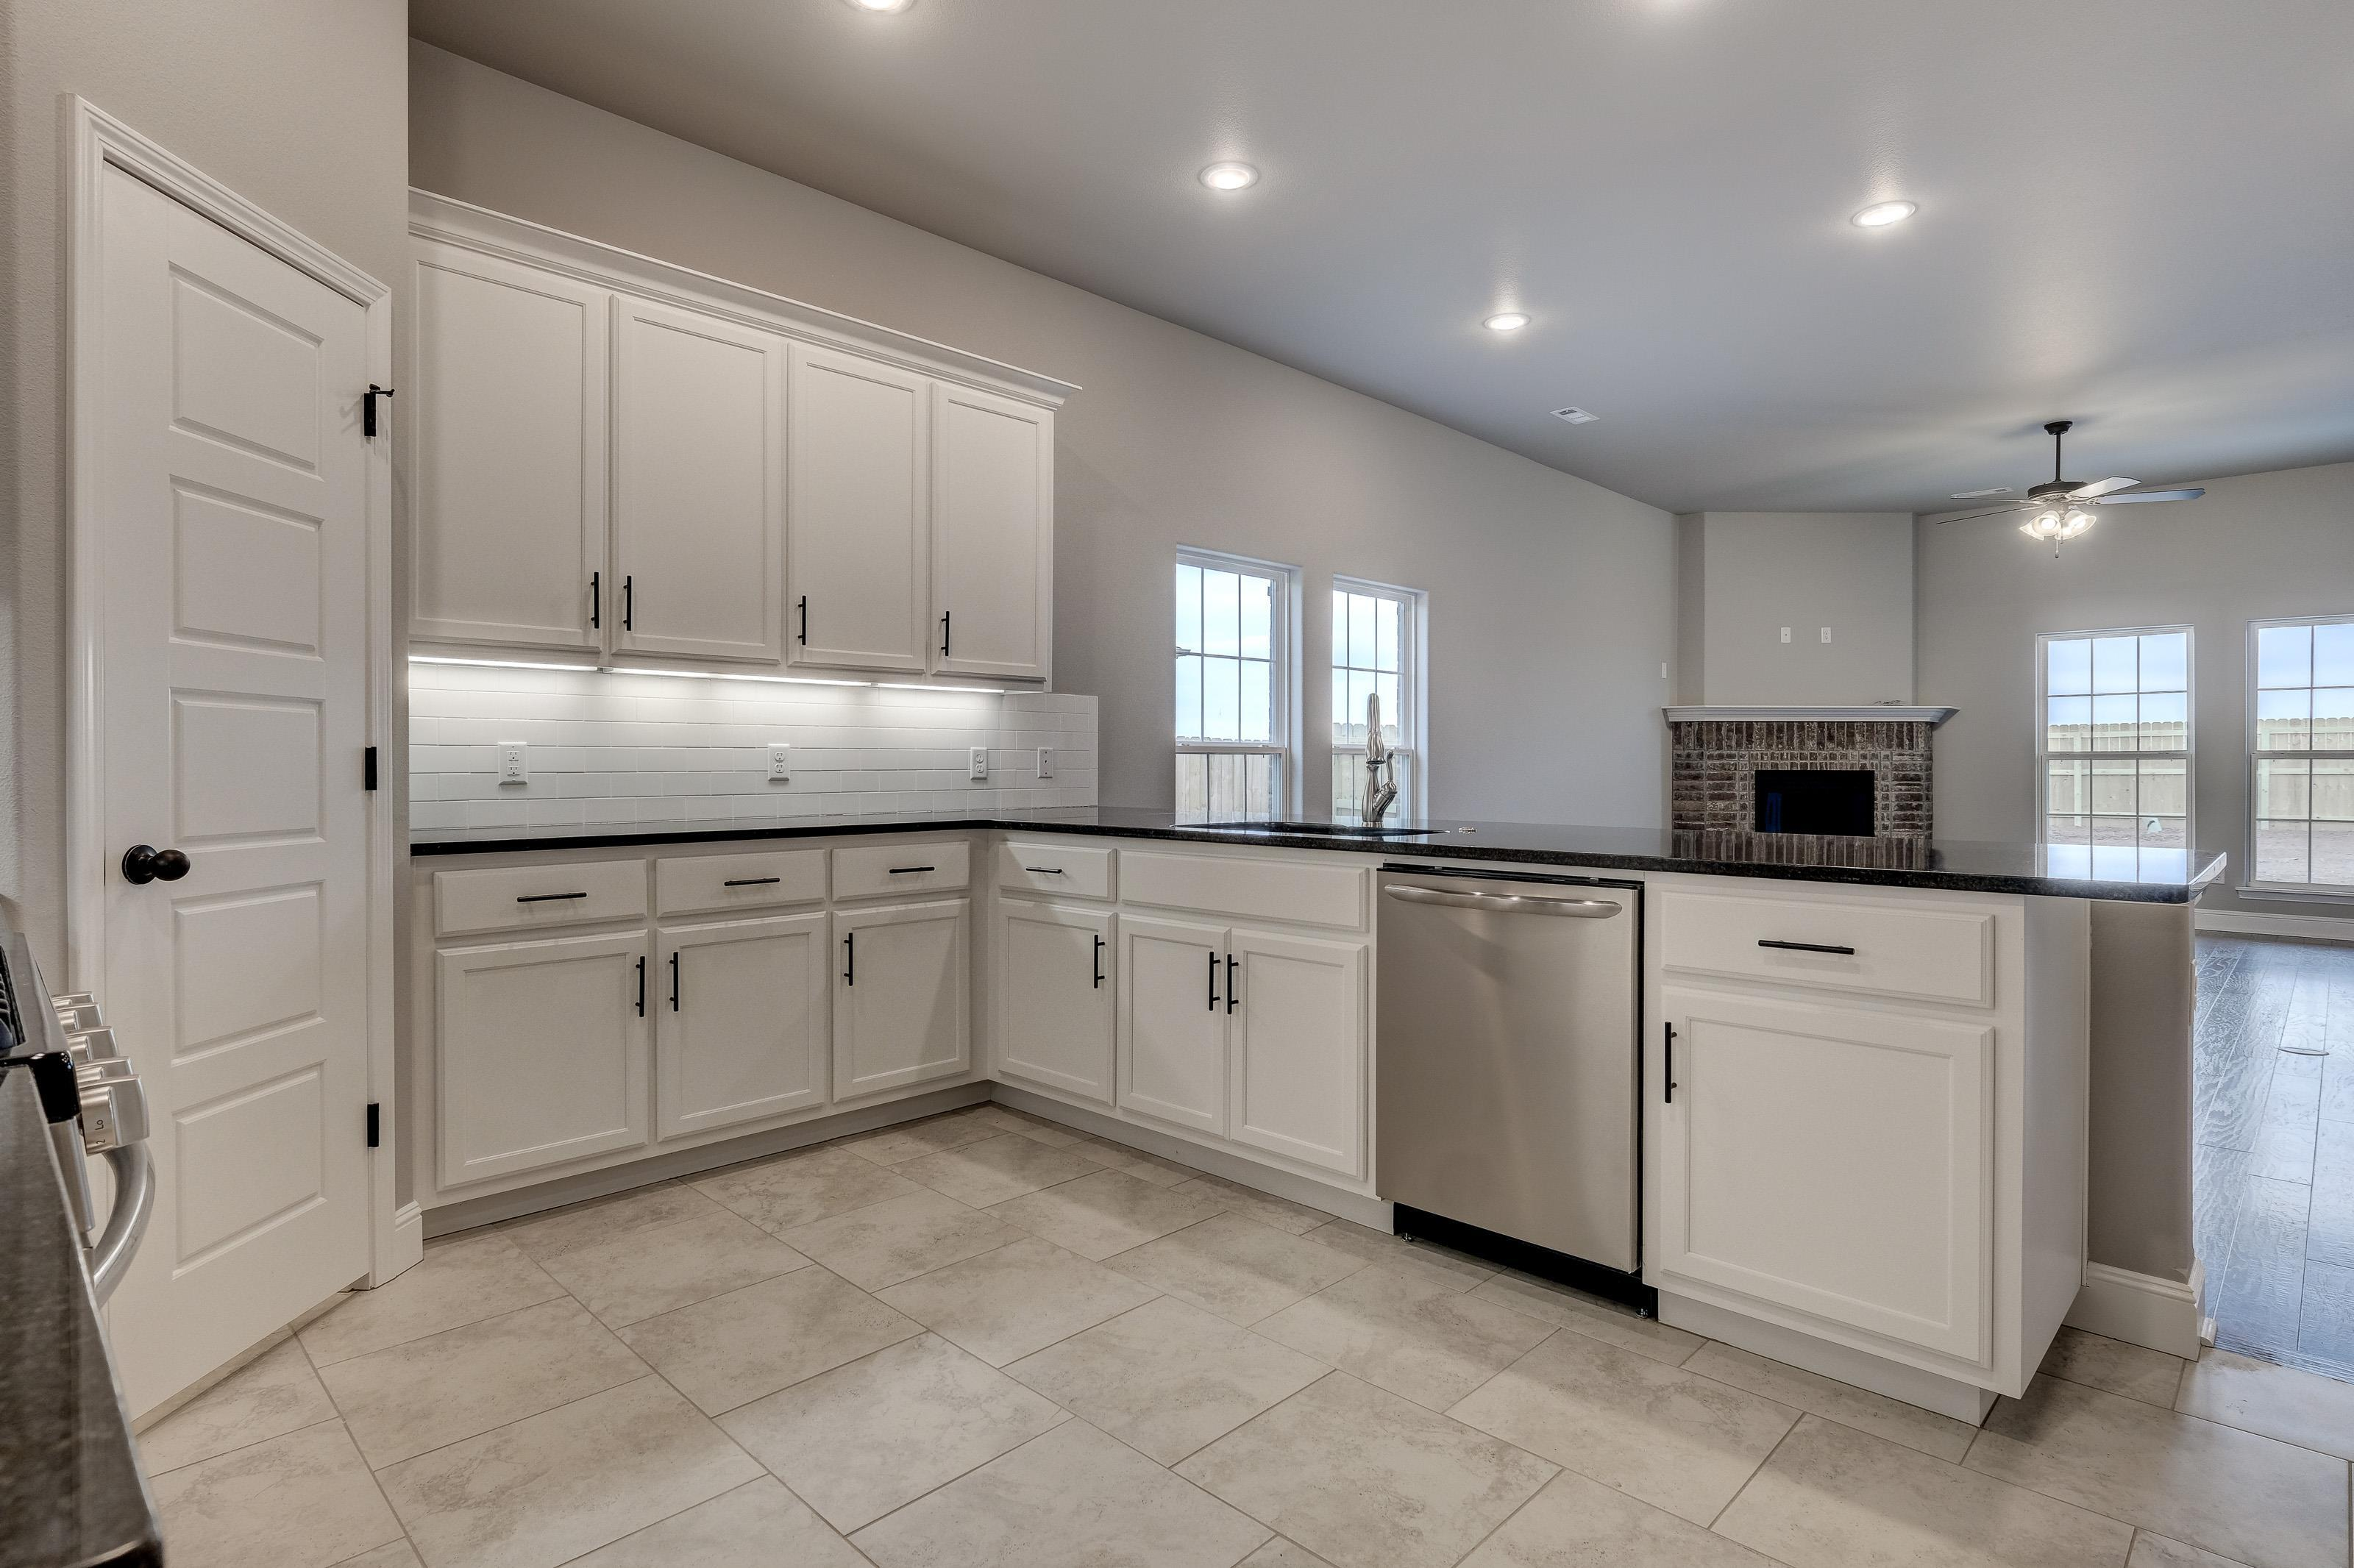 Kitchen featured in the 1950KP Series By Schuber Mitchell Homes in Fayetteville, AR